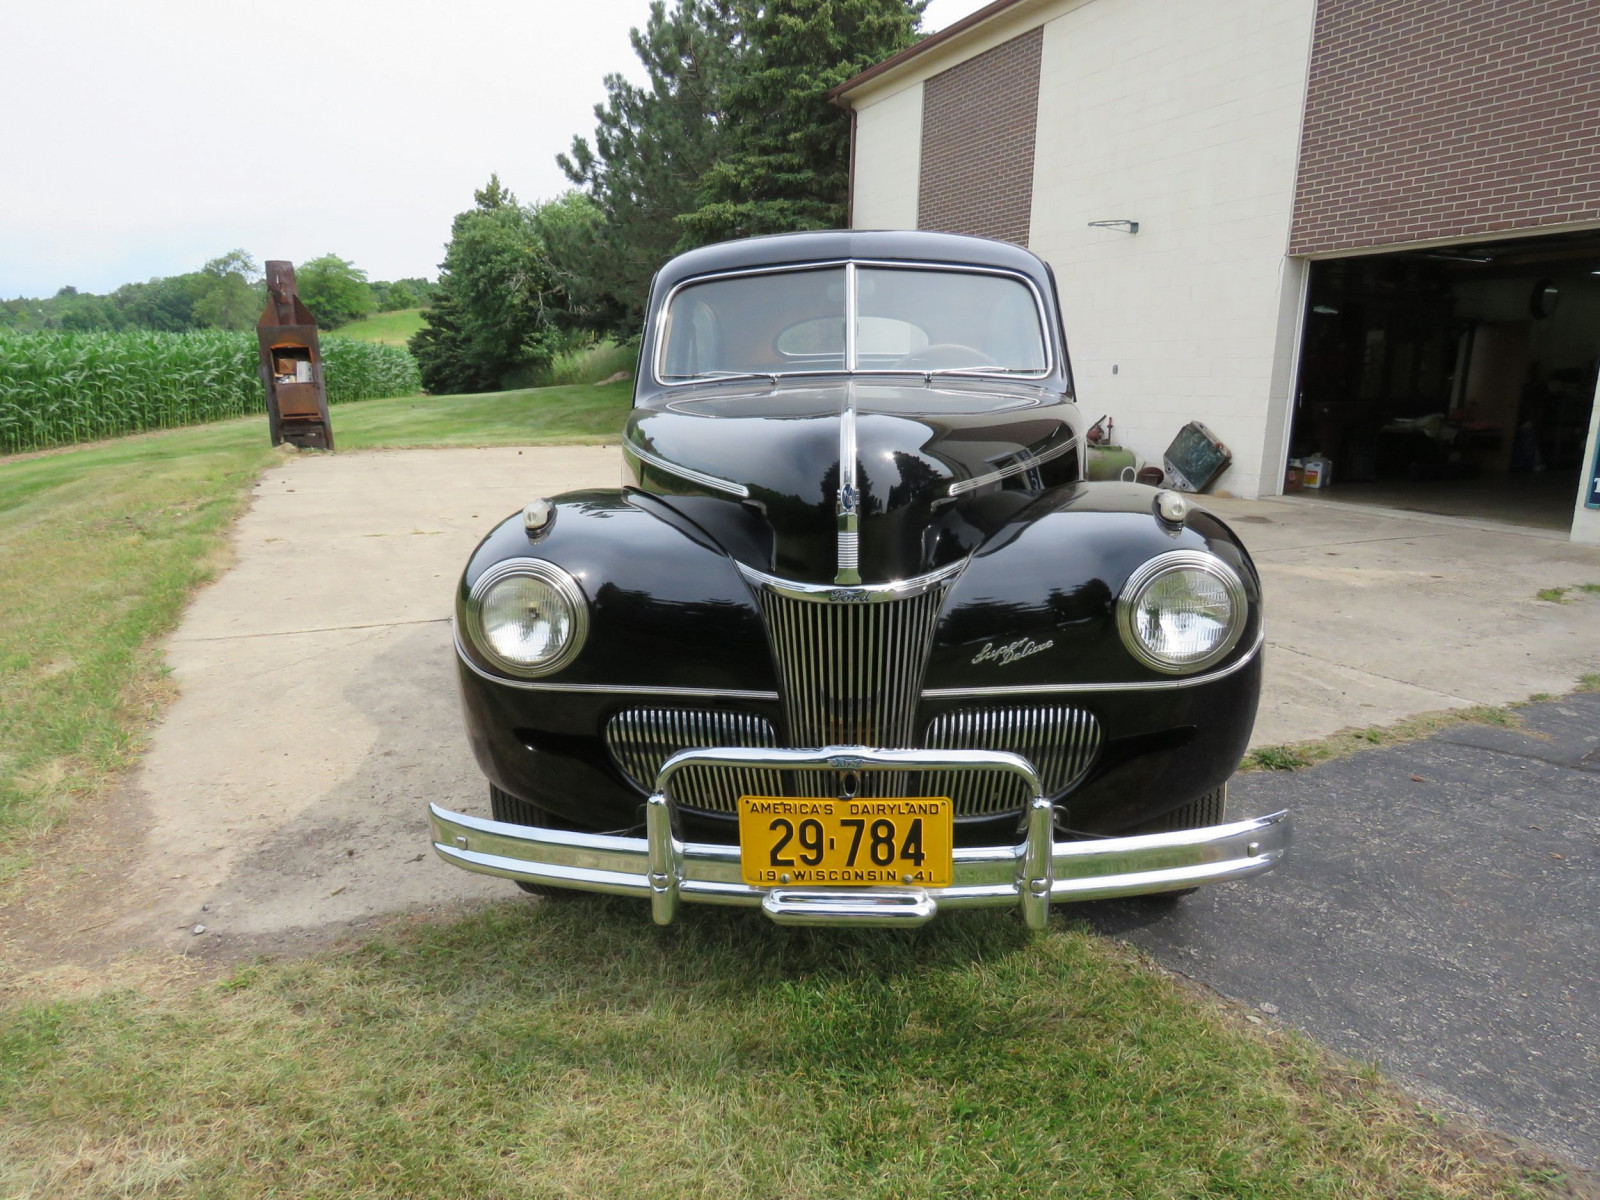 1941 Ford Super Deluxe Tudor Sedan - Image 2